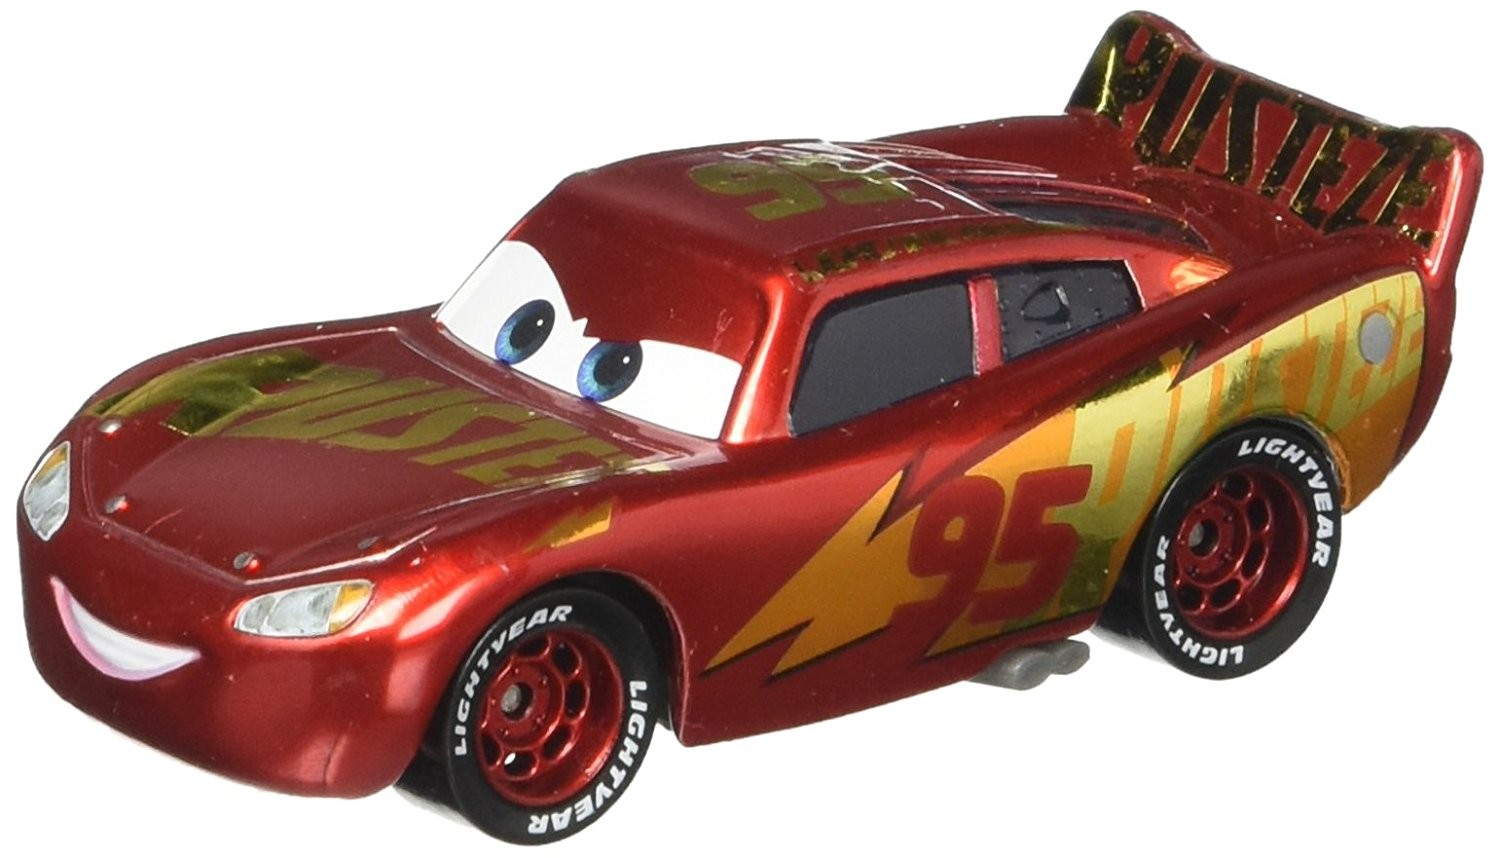 Rust Eze Racing Center Lightning Mcqueen Cars 3 Models Dxv45